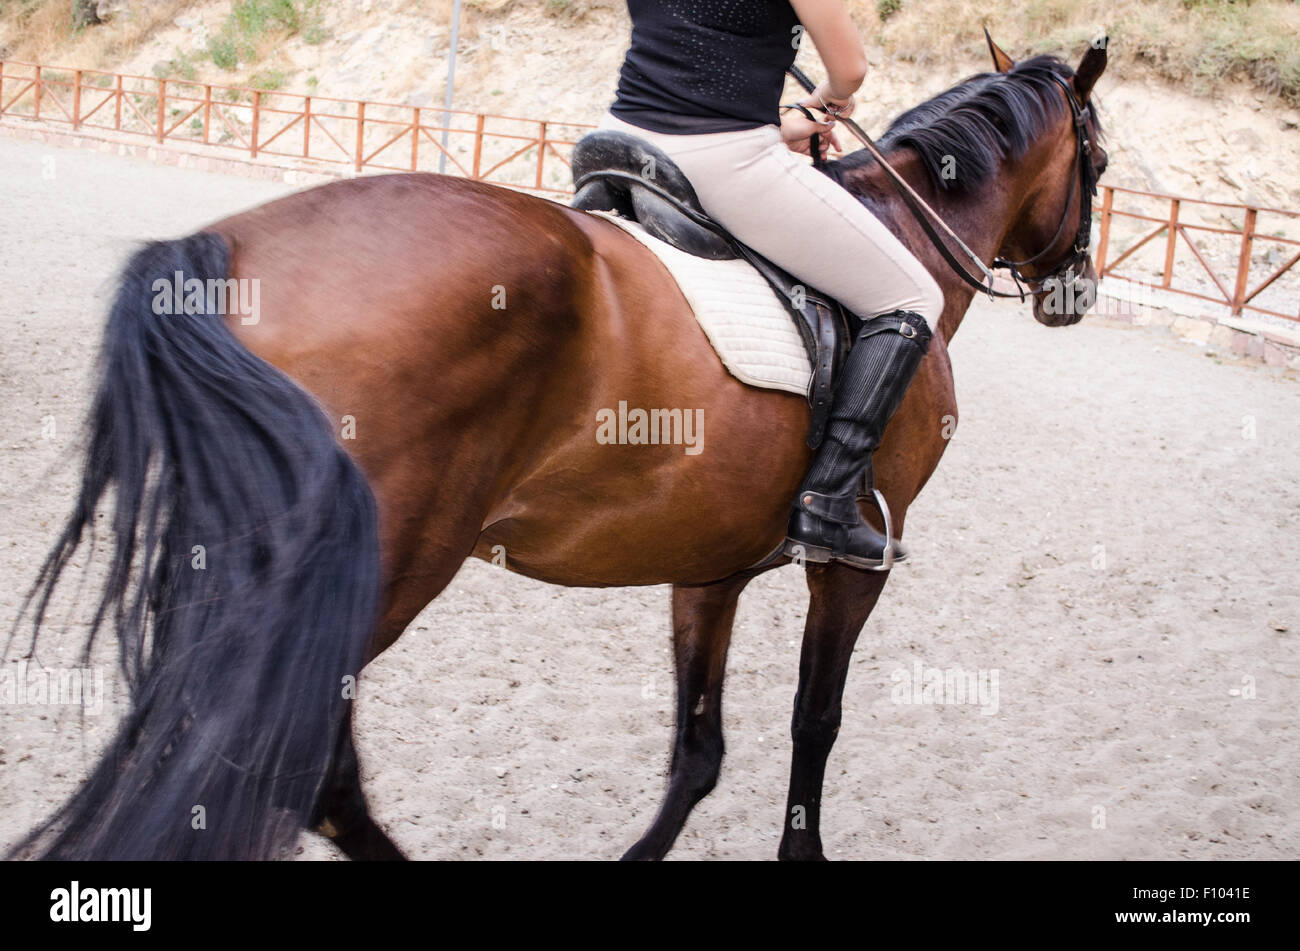 Young sportswoman straddled the dark bay horse - Stock Image